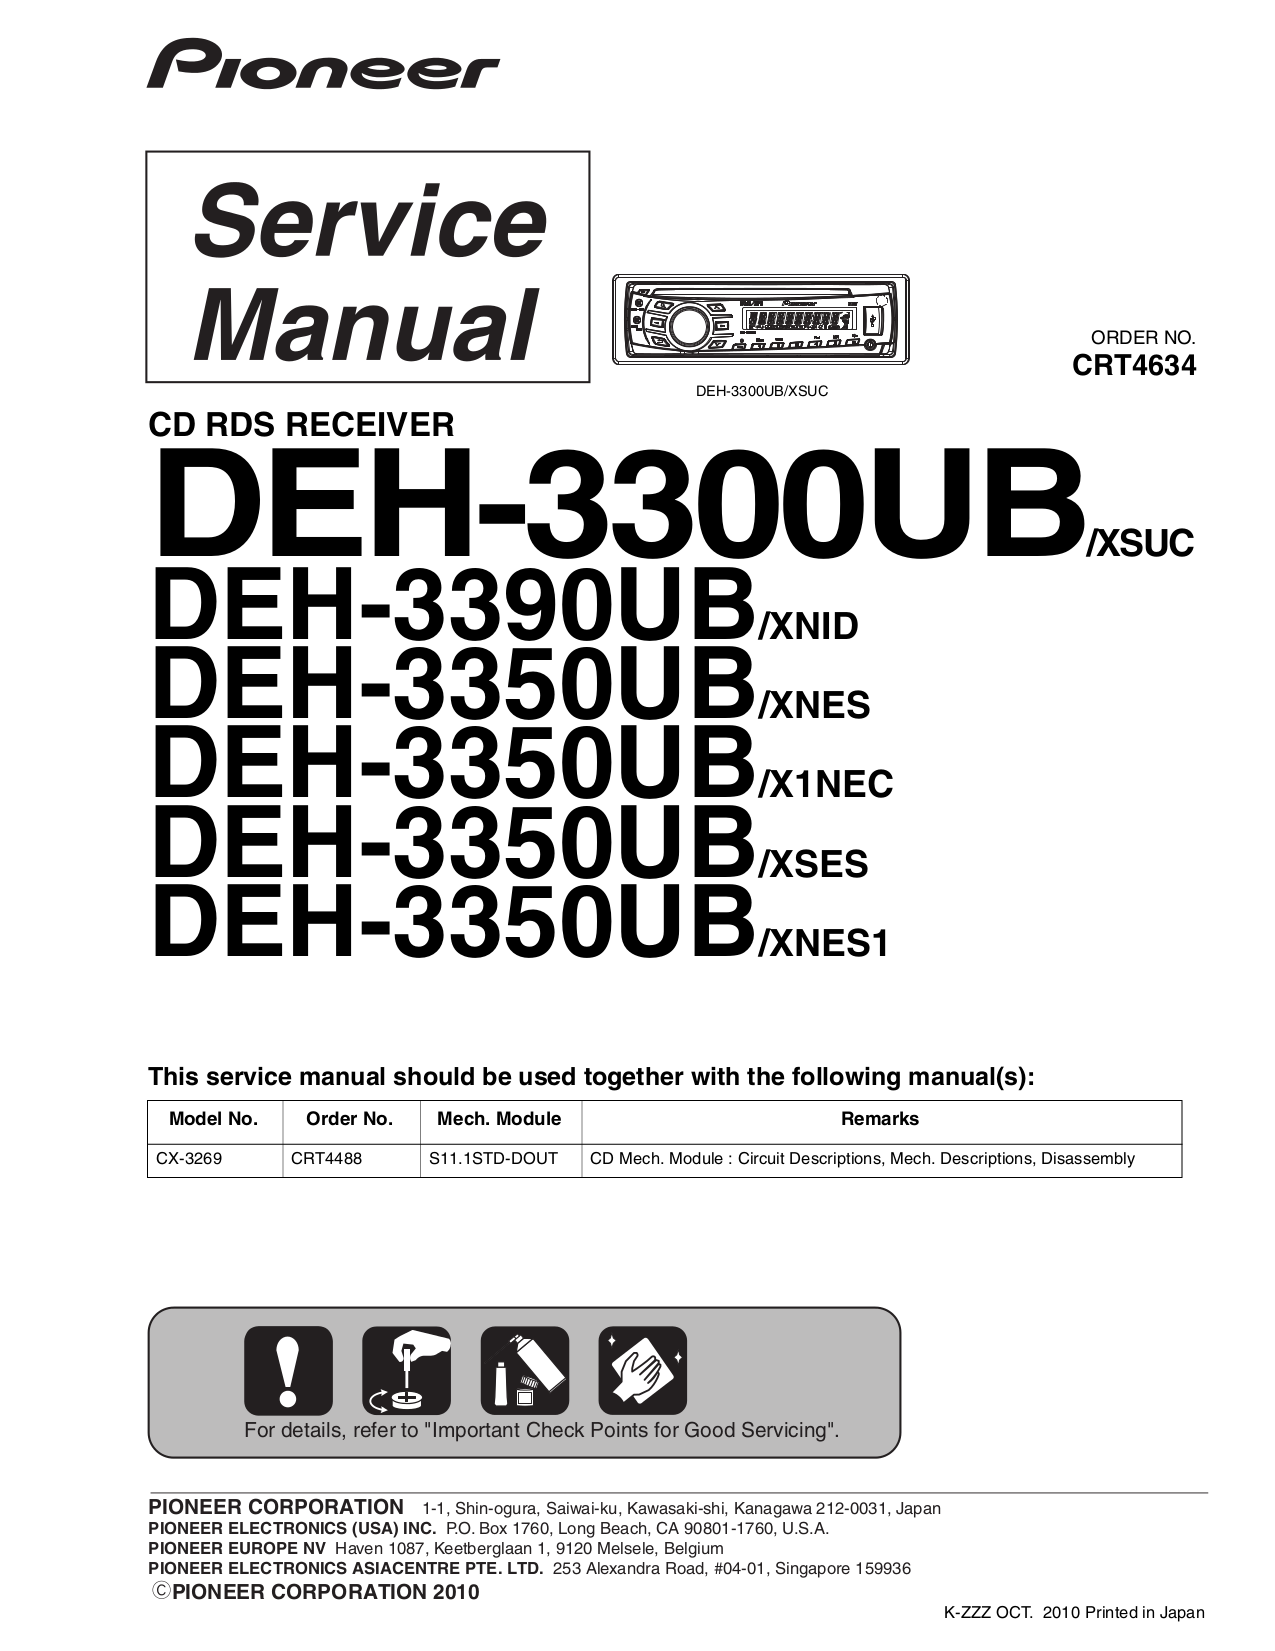 Pioneer_DEH 3300UB_3350UB_3390UB.pdf 0 download free pdf for pioneer deh 3300ub car receiver manual pioneer deh 3300ub wiring diagram at panicattacktreatment.co